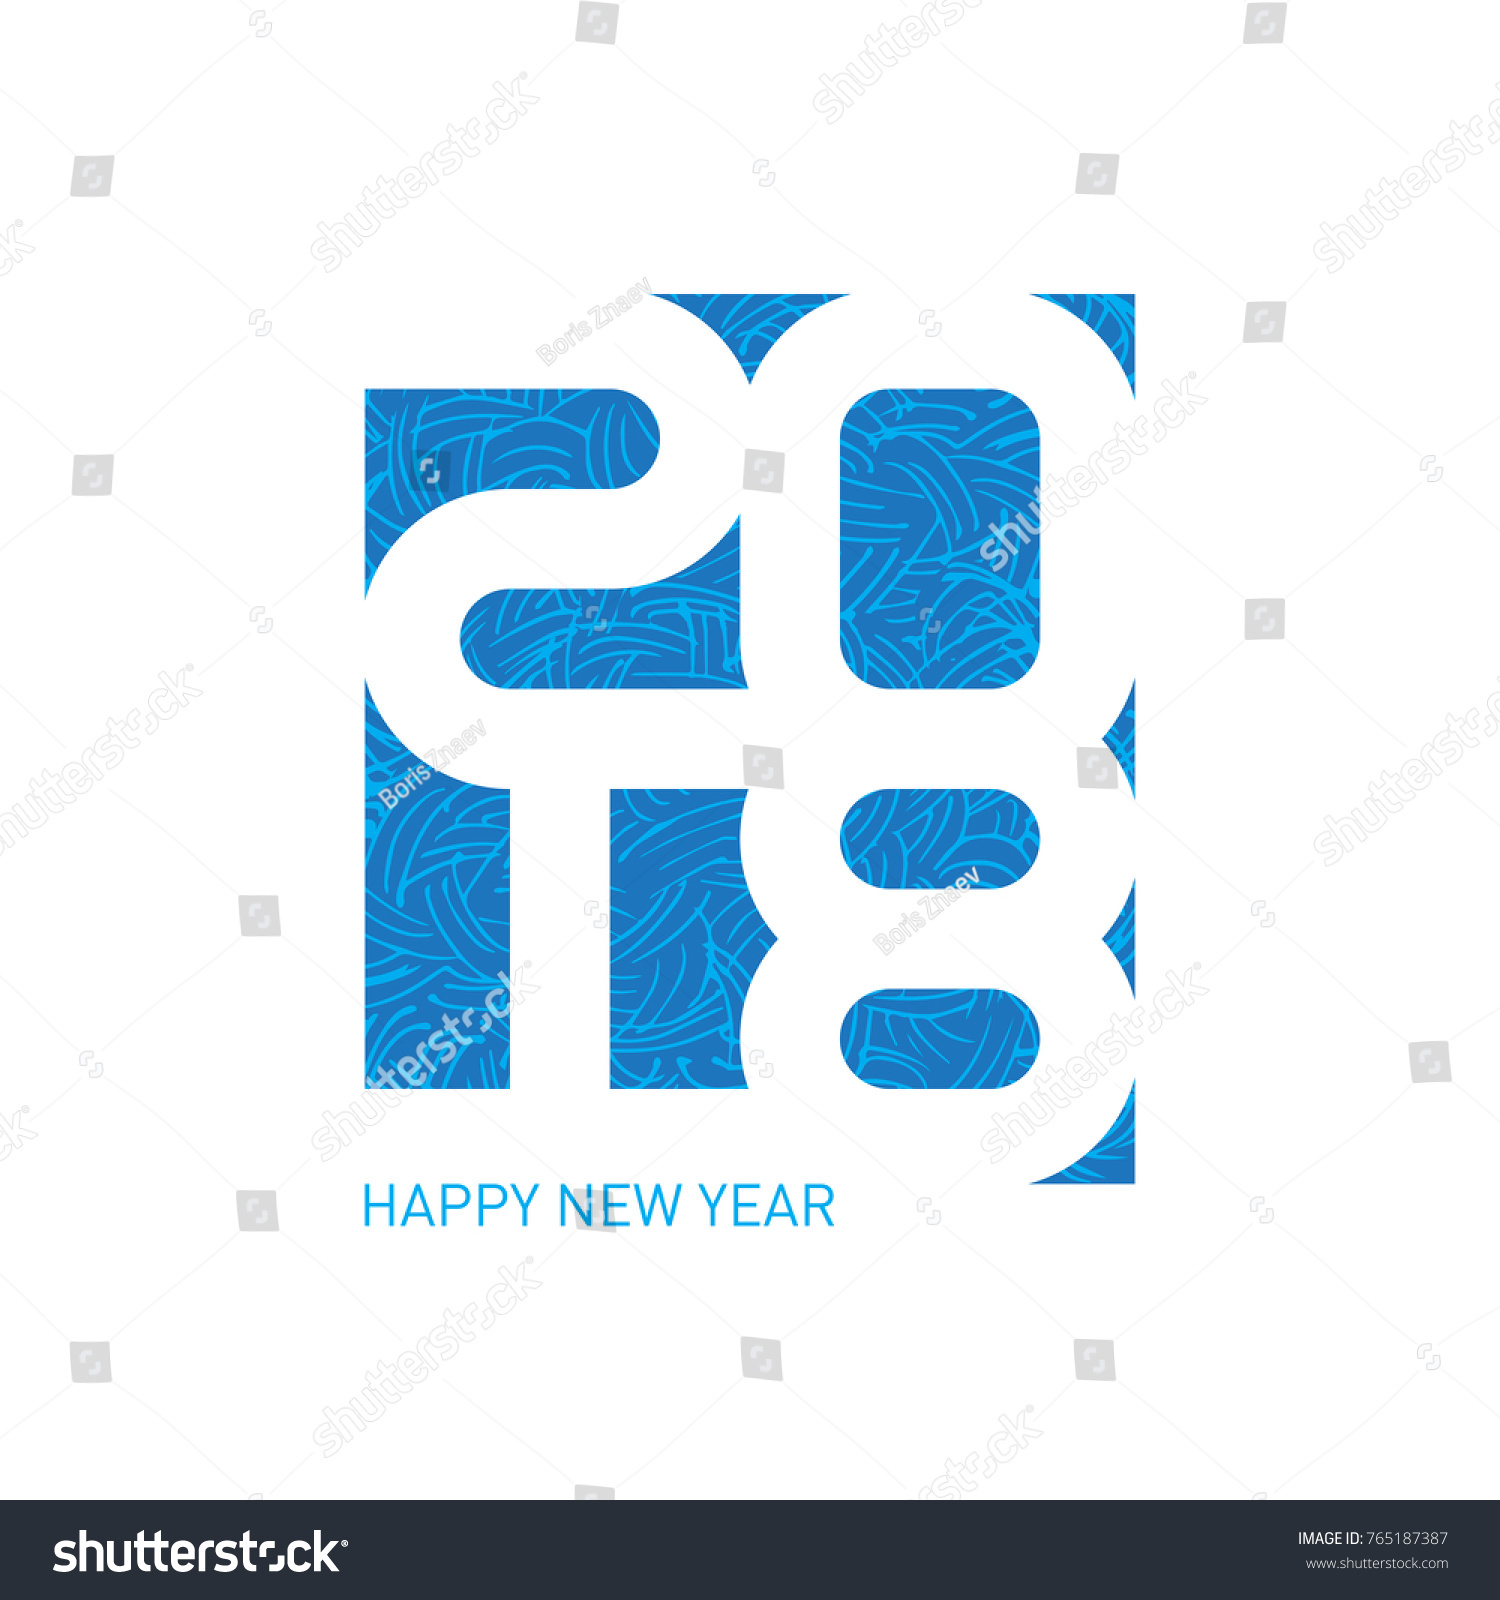 Happy New Year 2018 Vector Greeting Stock Vector 765187387 ...